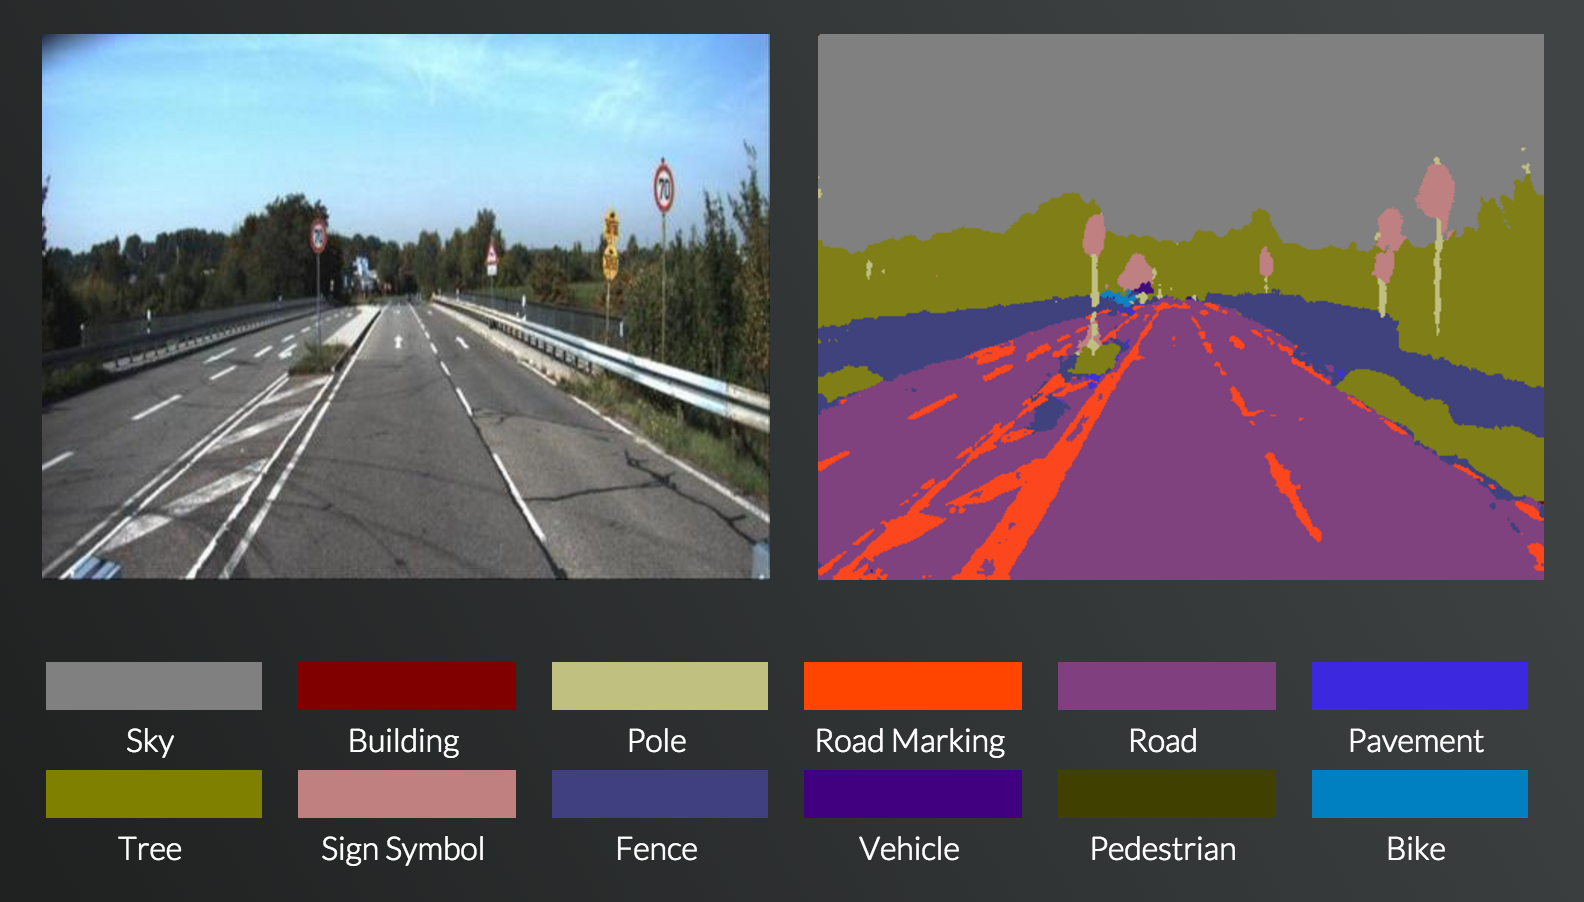 SegNet_Classifying_Road_Objects